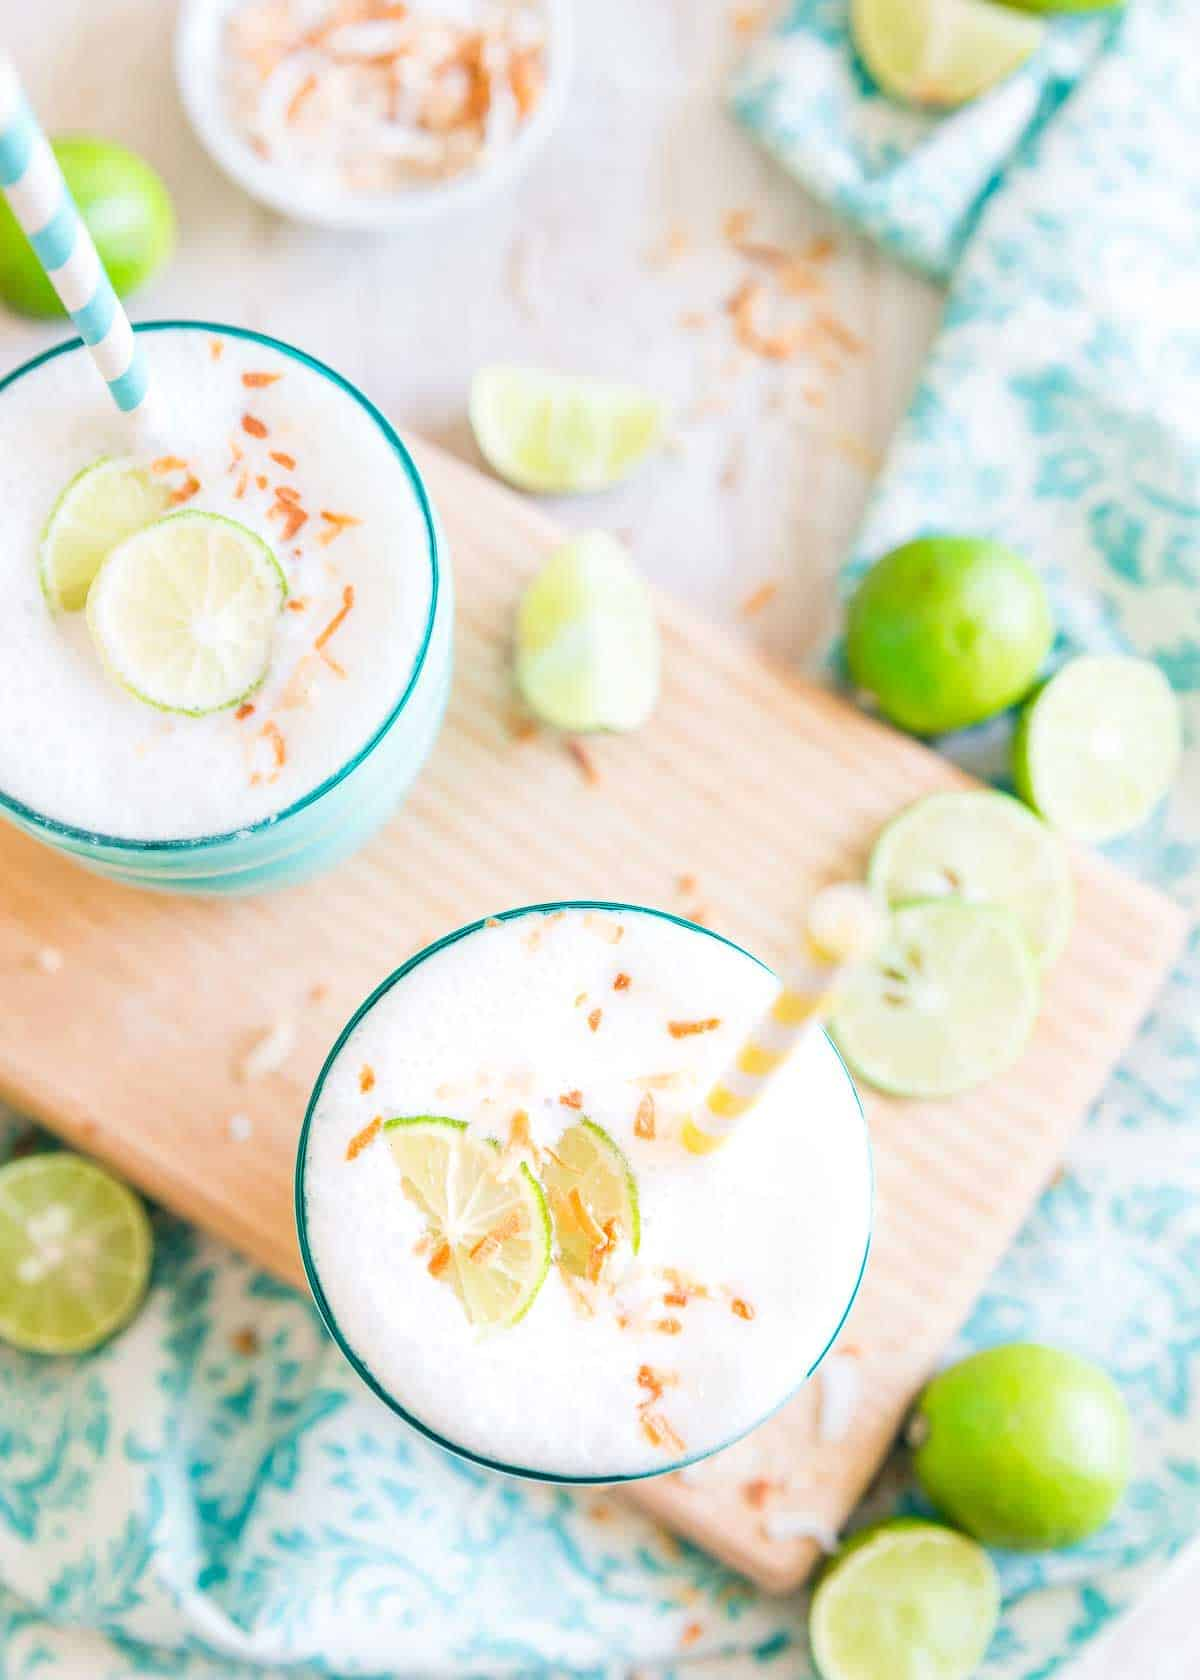 One sip of this key lime smoothie and you'll think you're on a beach vacation.